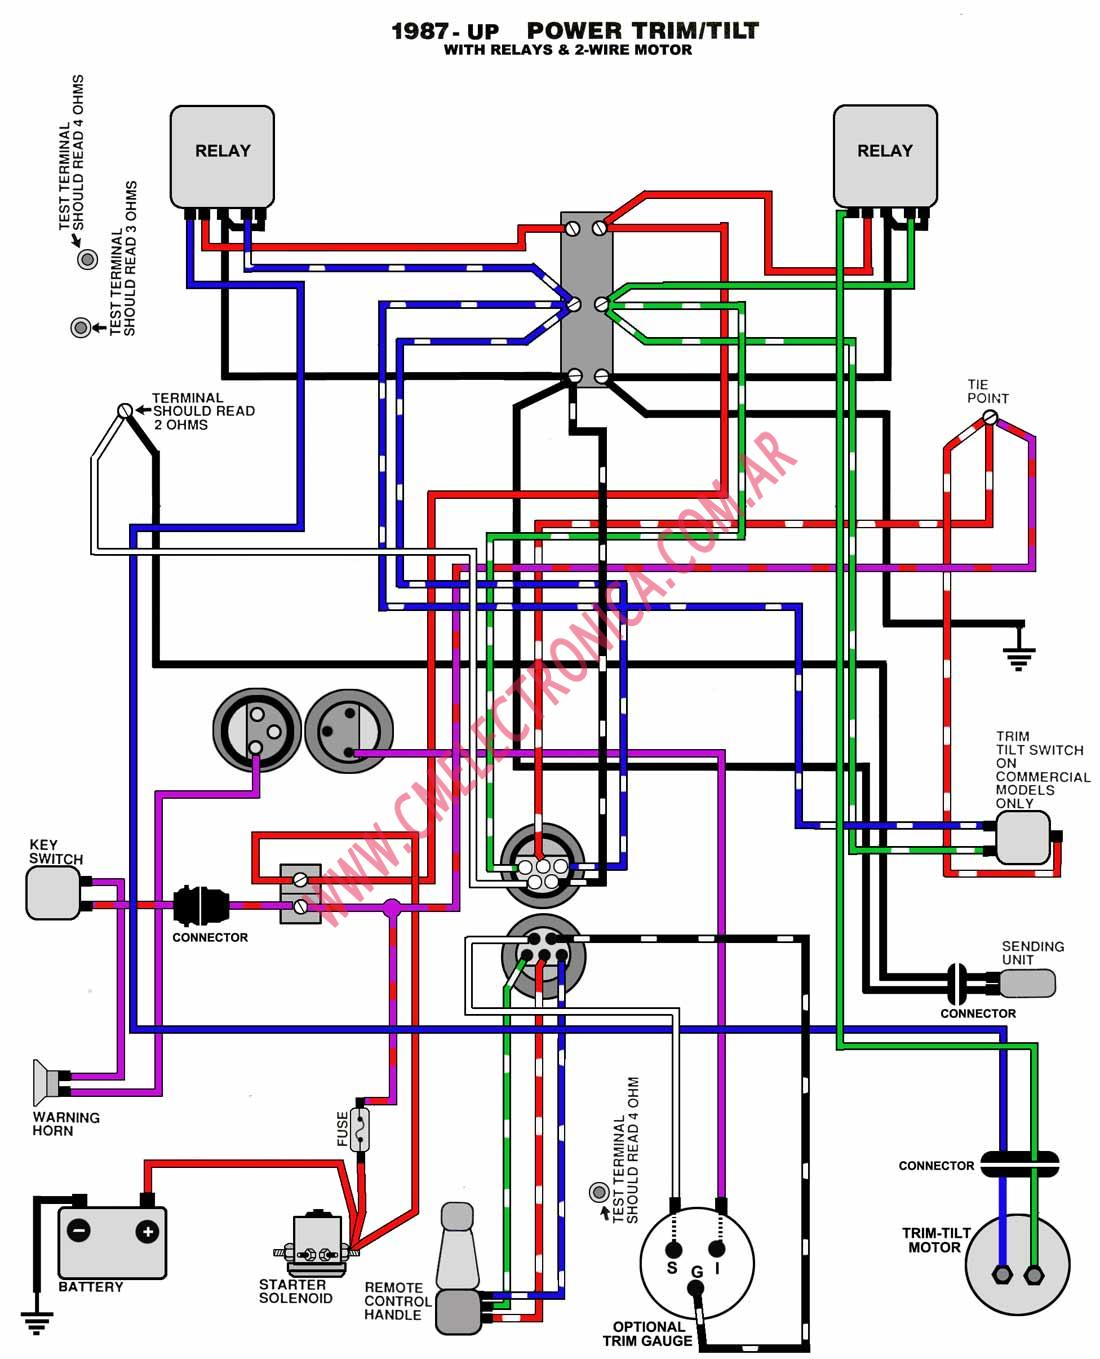 hight resolution of 1971 yamaha engine diagram 5 17 depo aqua de u2022yamaha l2gf wiring diagram online wiring